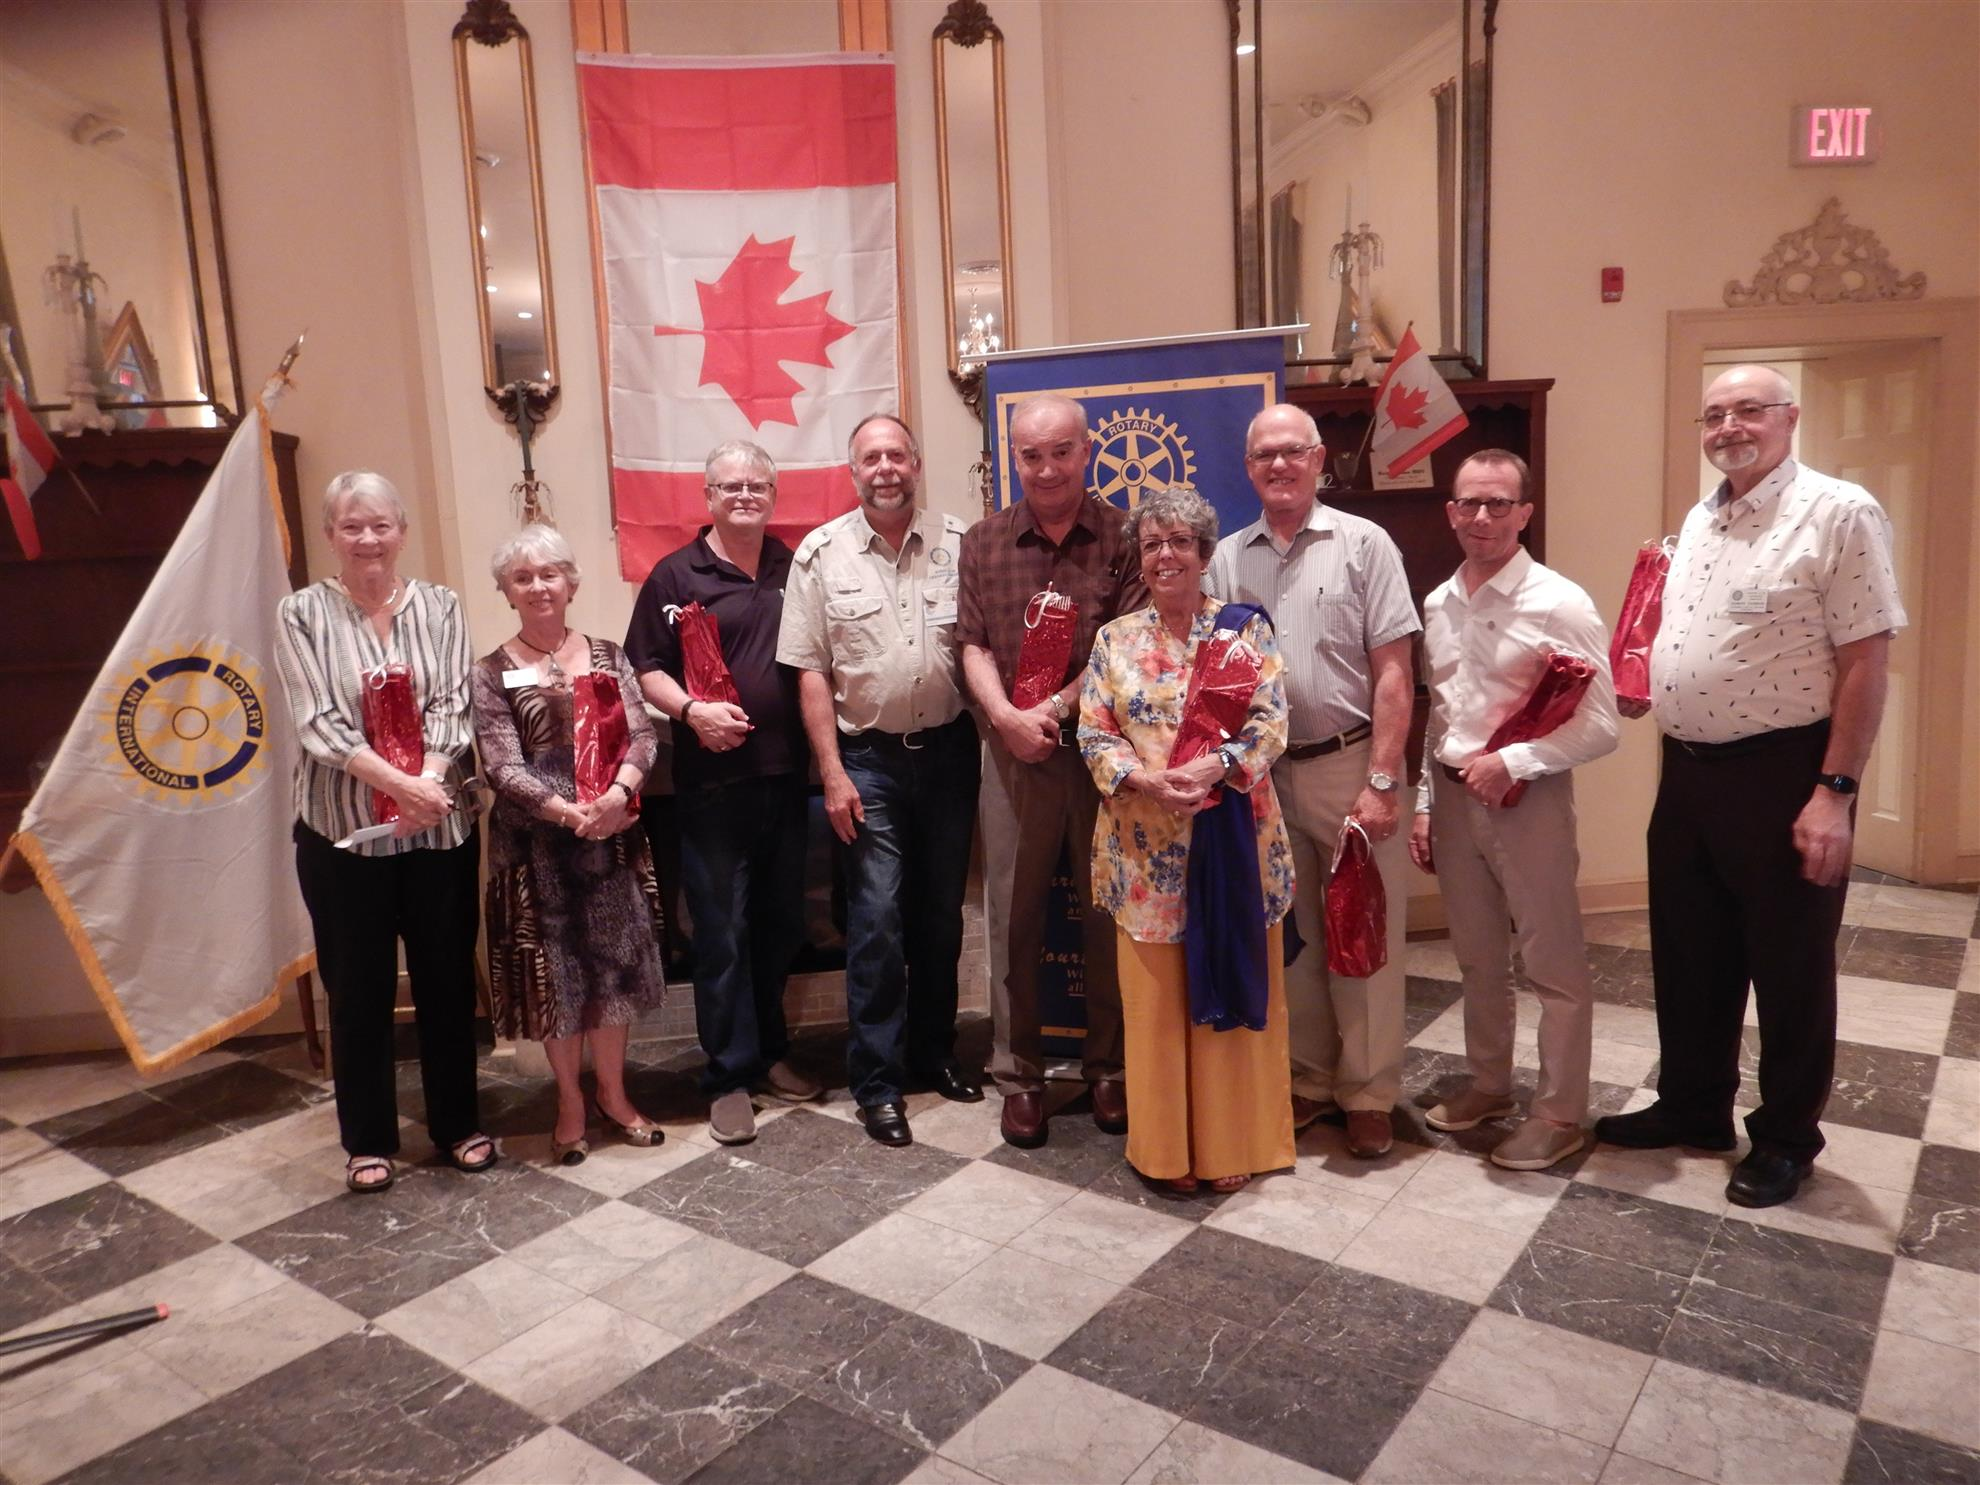 Thanks to the outgoing board